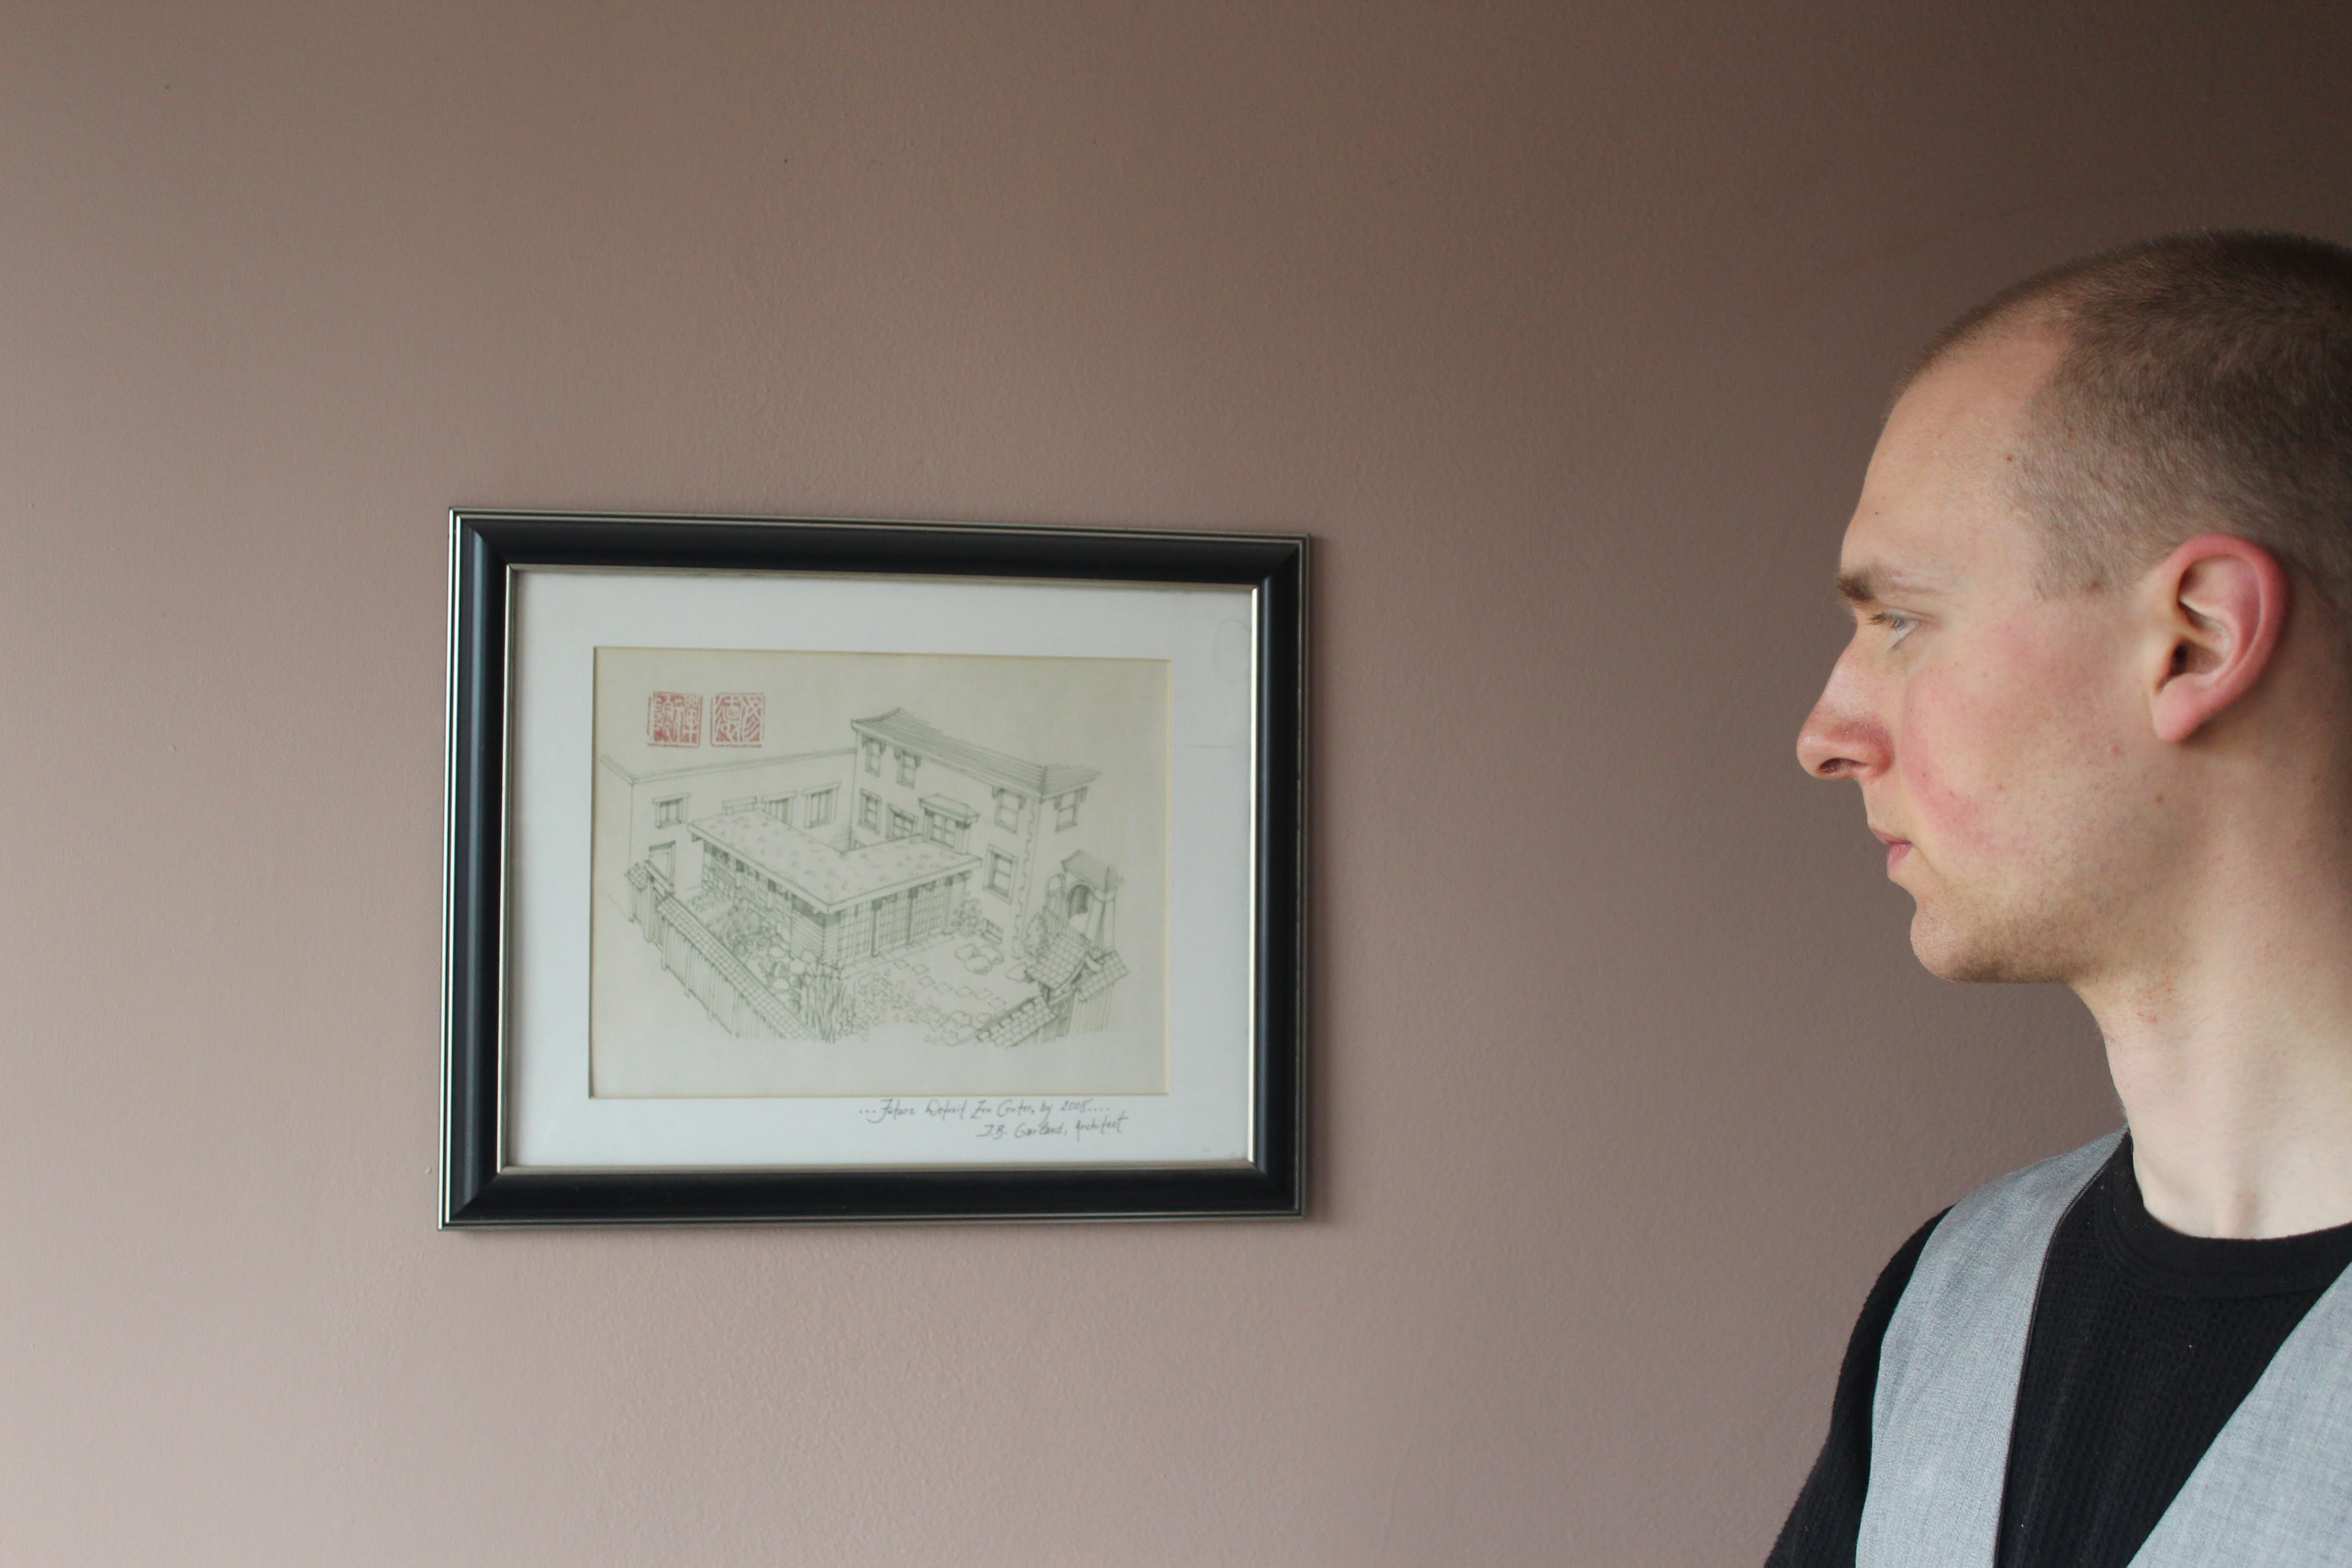 Sojong Silas Bruner looking at a drawing of the plans for the Detroit Zen Center